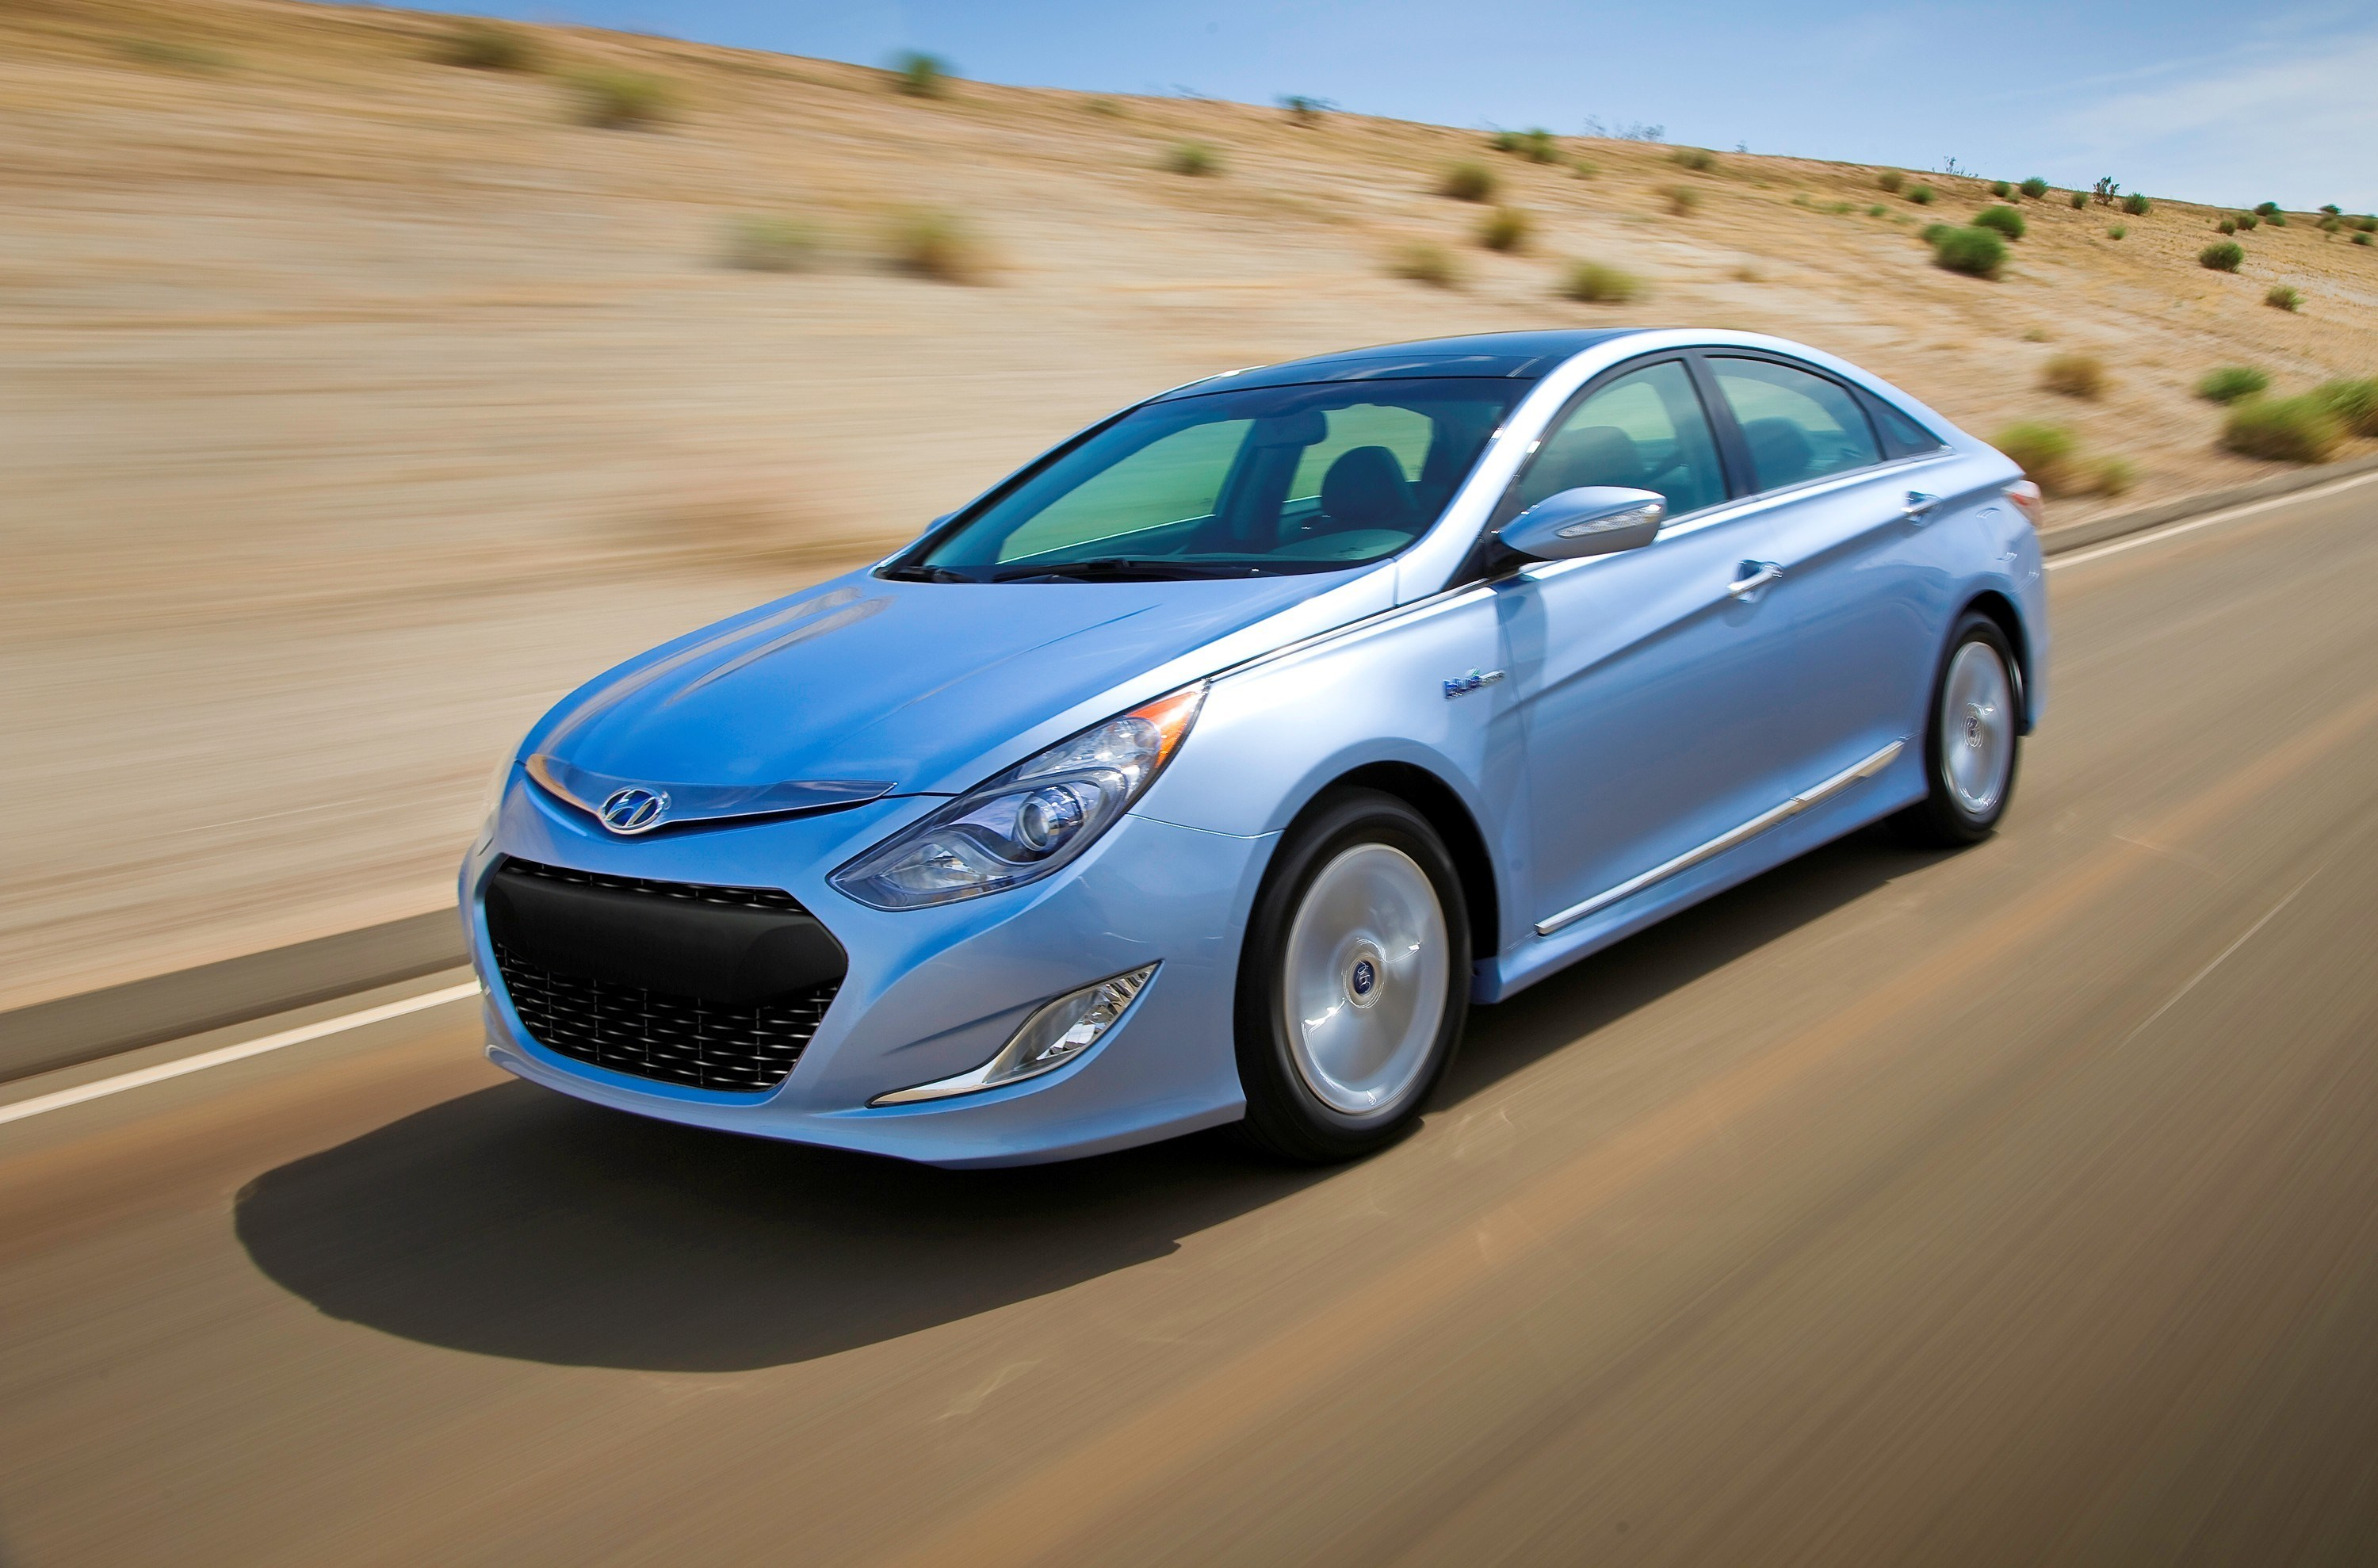 Hyundai Motor said it plans to sell 18,000 units of its new Sonata hybrid in the local market this year, as well as expand the green car market at home by building all-wheel drive green cars and next-generation plug-in hybrids. (image: Hyundai Motor)